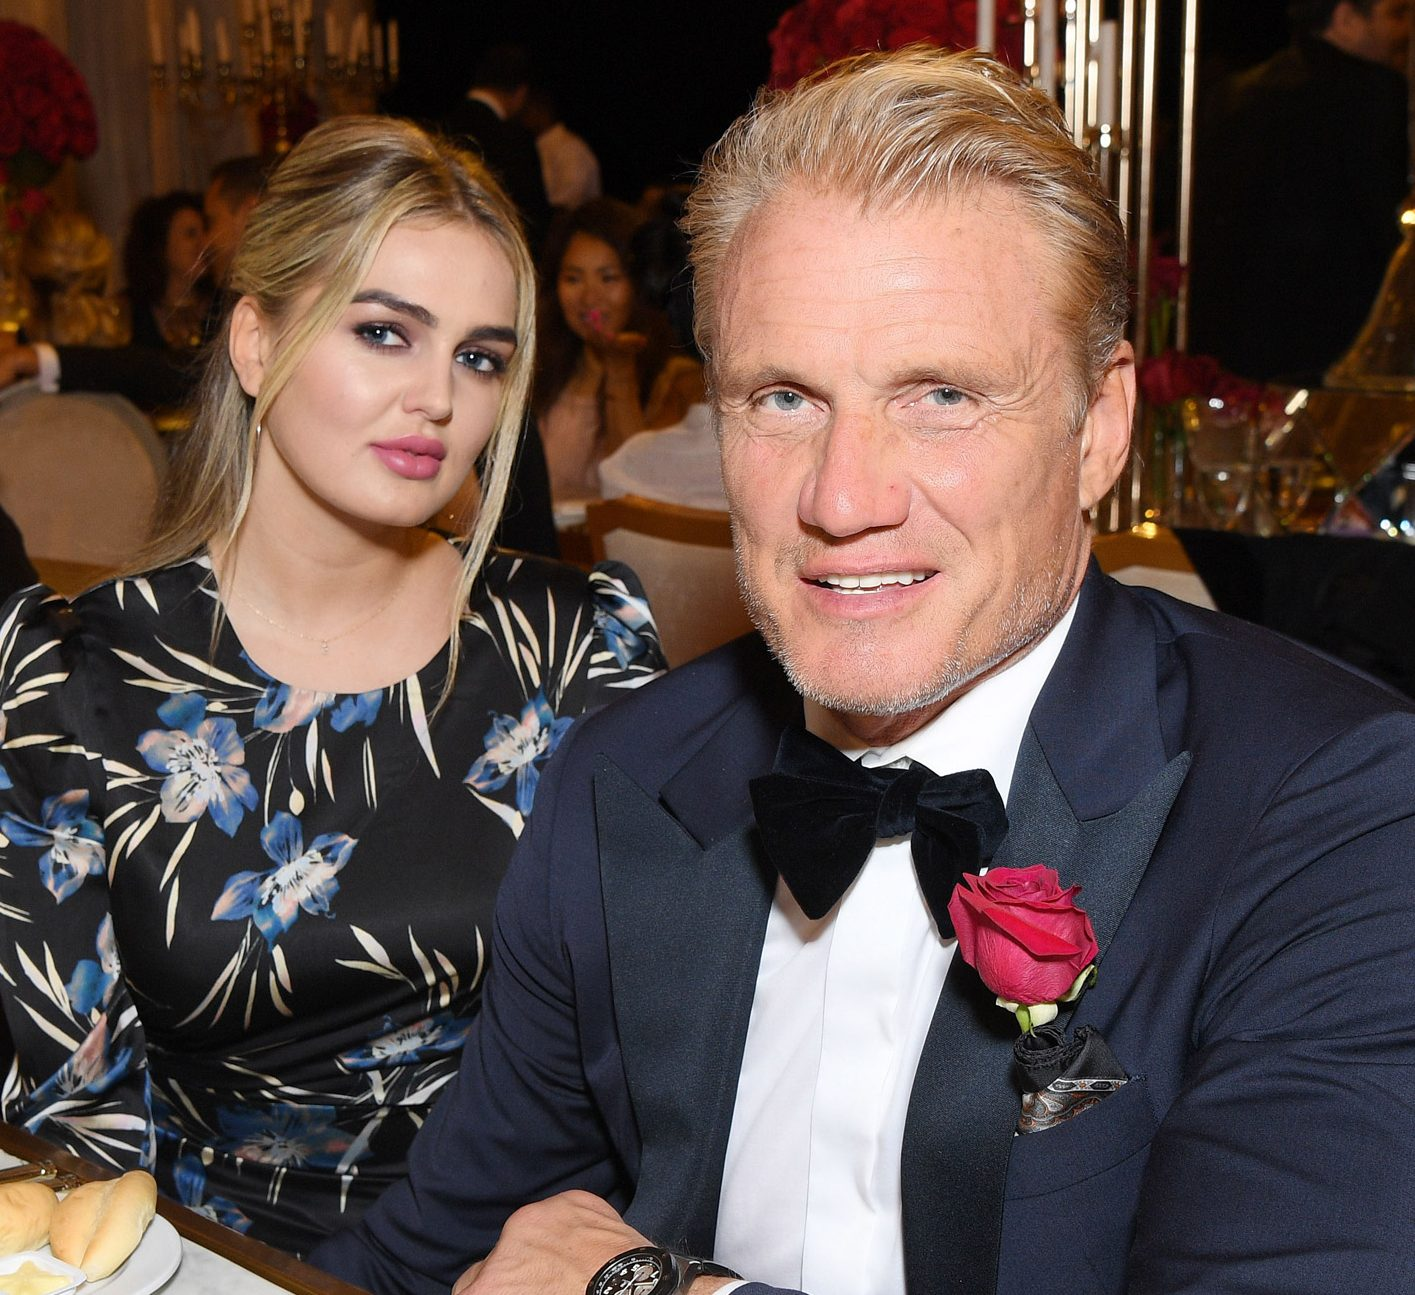 dolph lundgren emma krokdal e1605790312665 25 Things You Probably Didn't Know About Action Movie Legend Dolph Lundgren